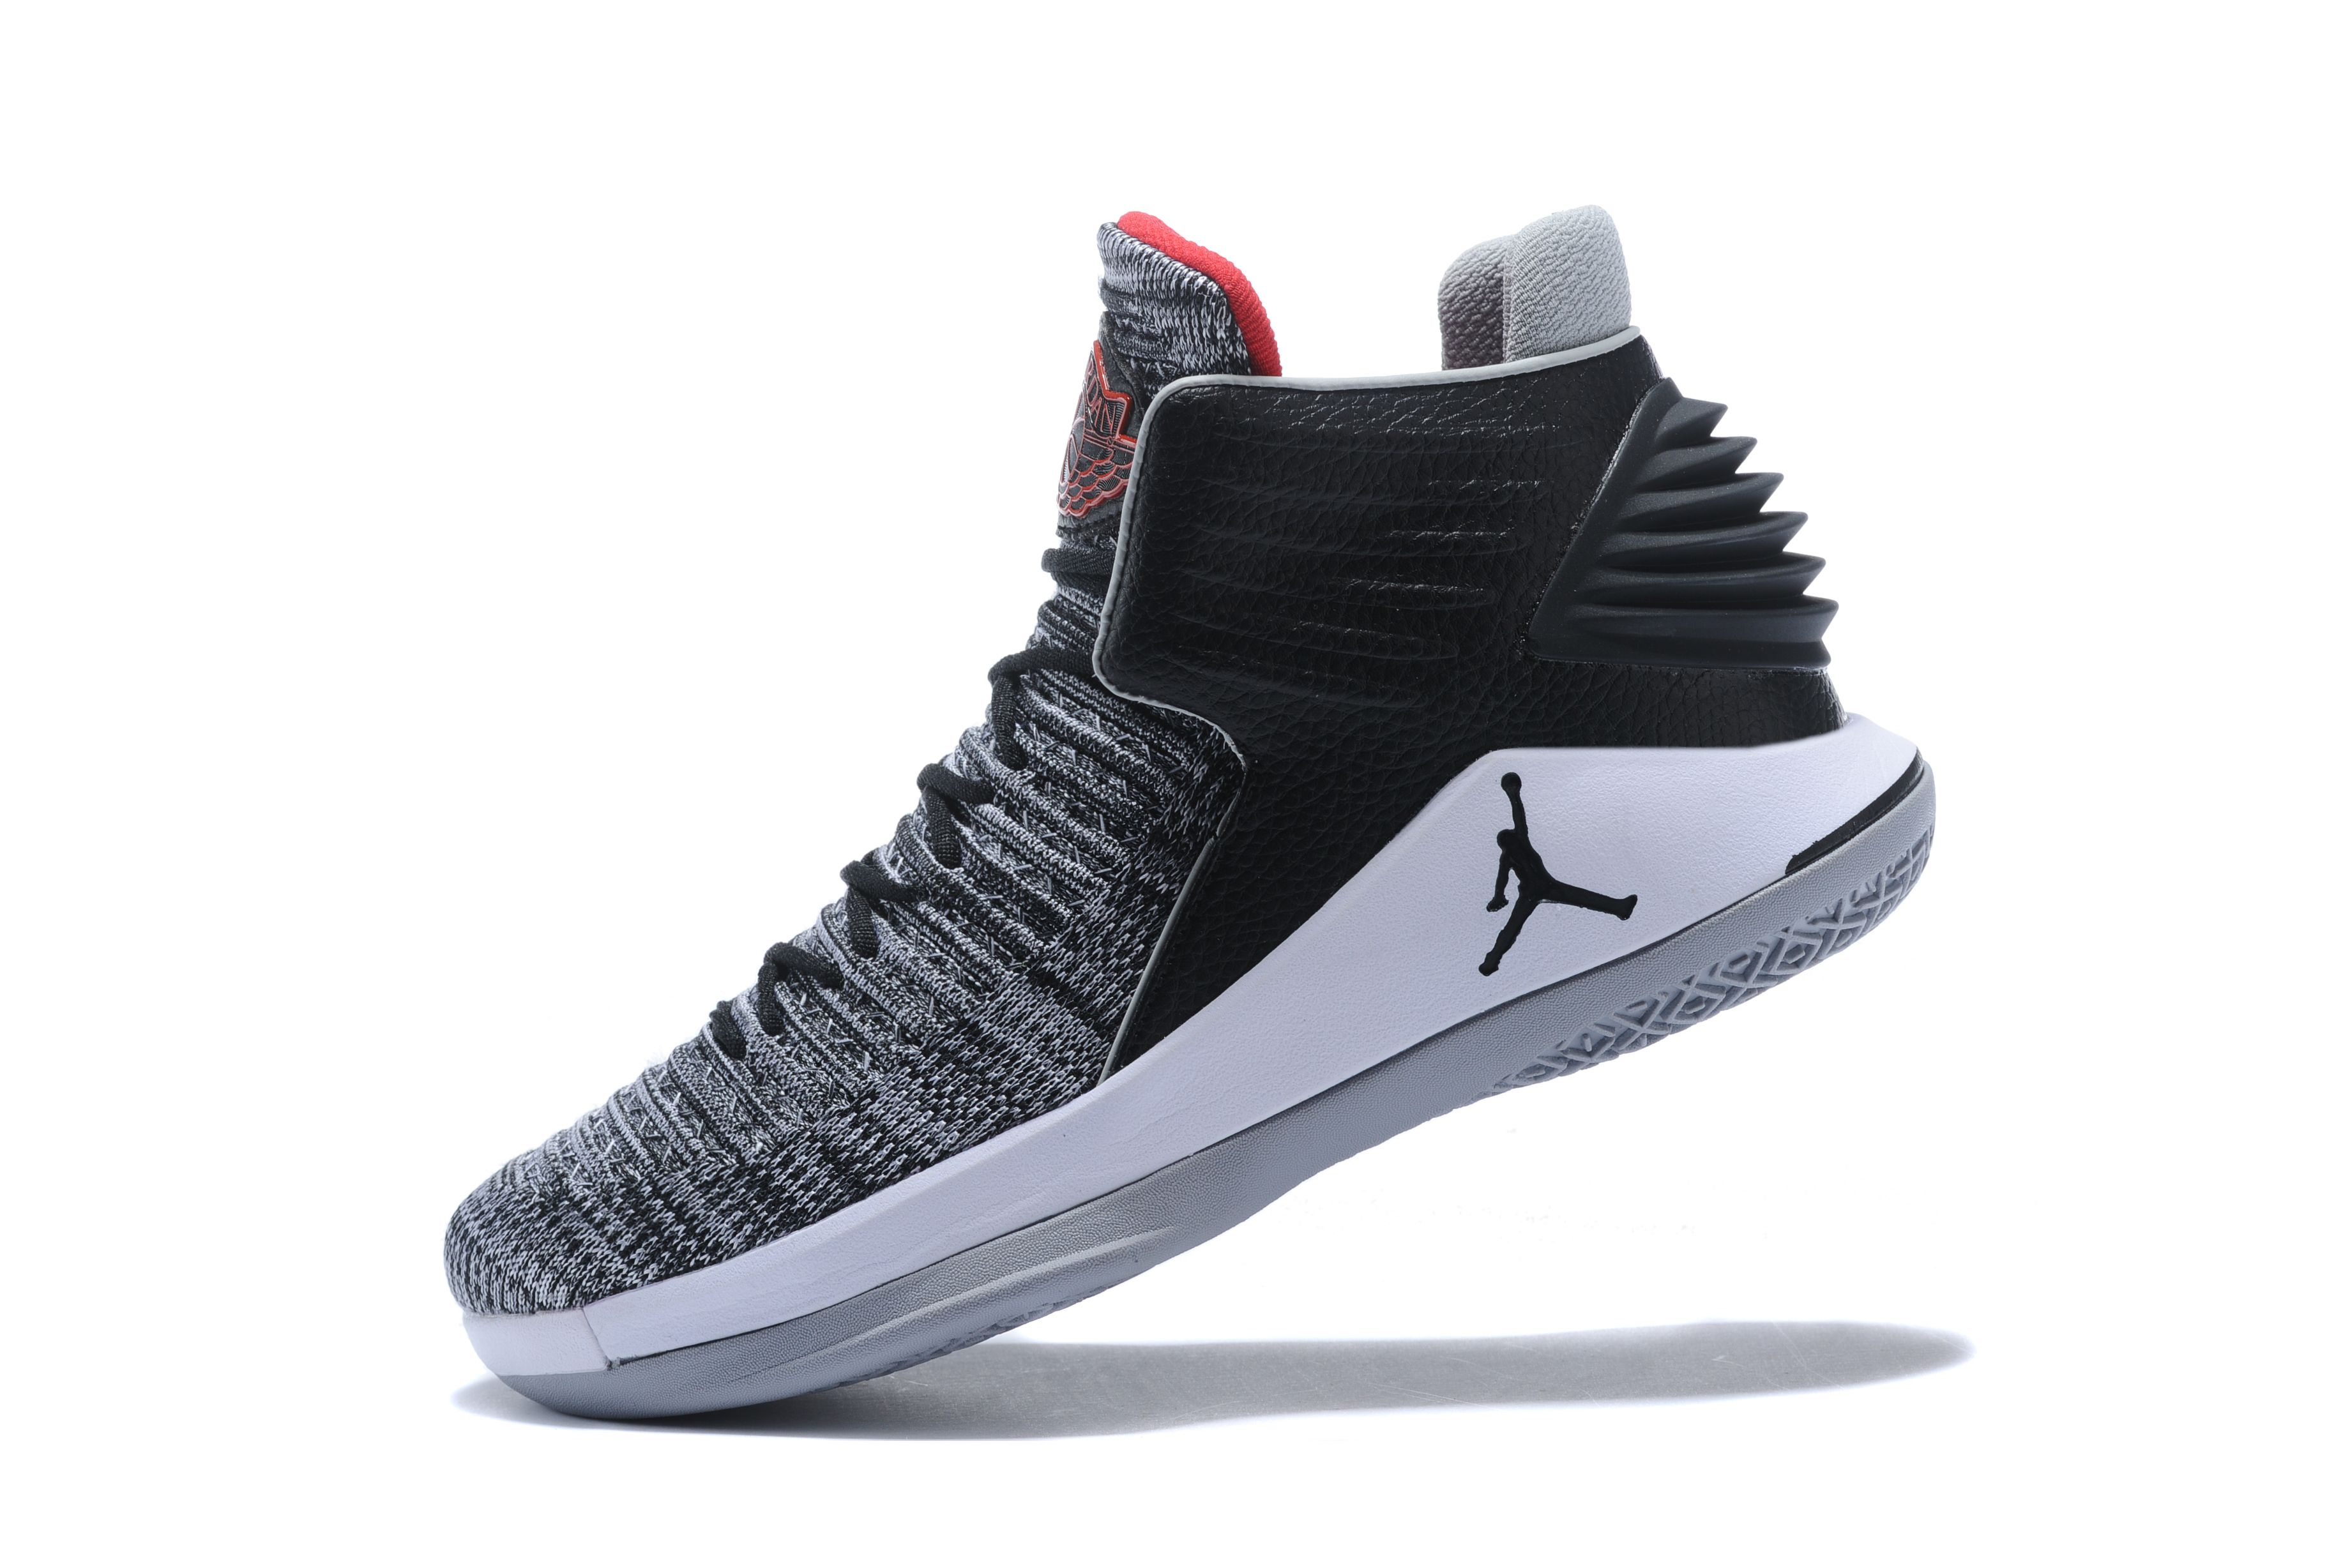 new arrival e978e 0fed3 2018 Air Jordan 32